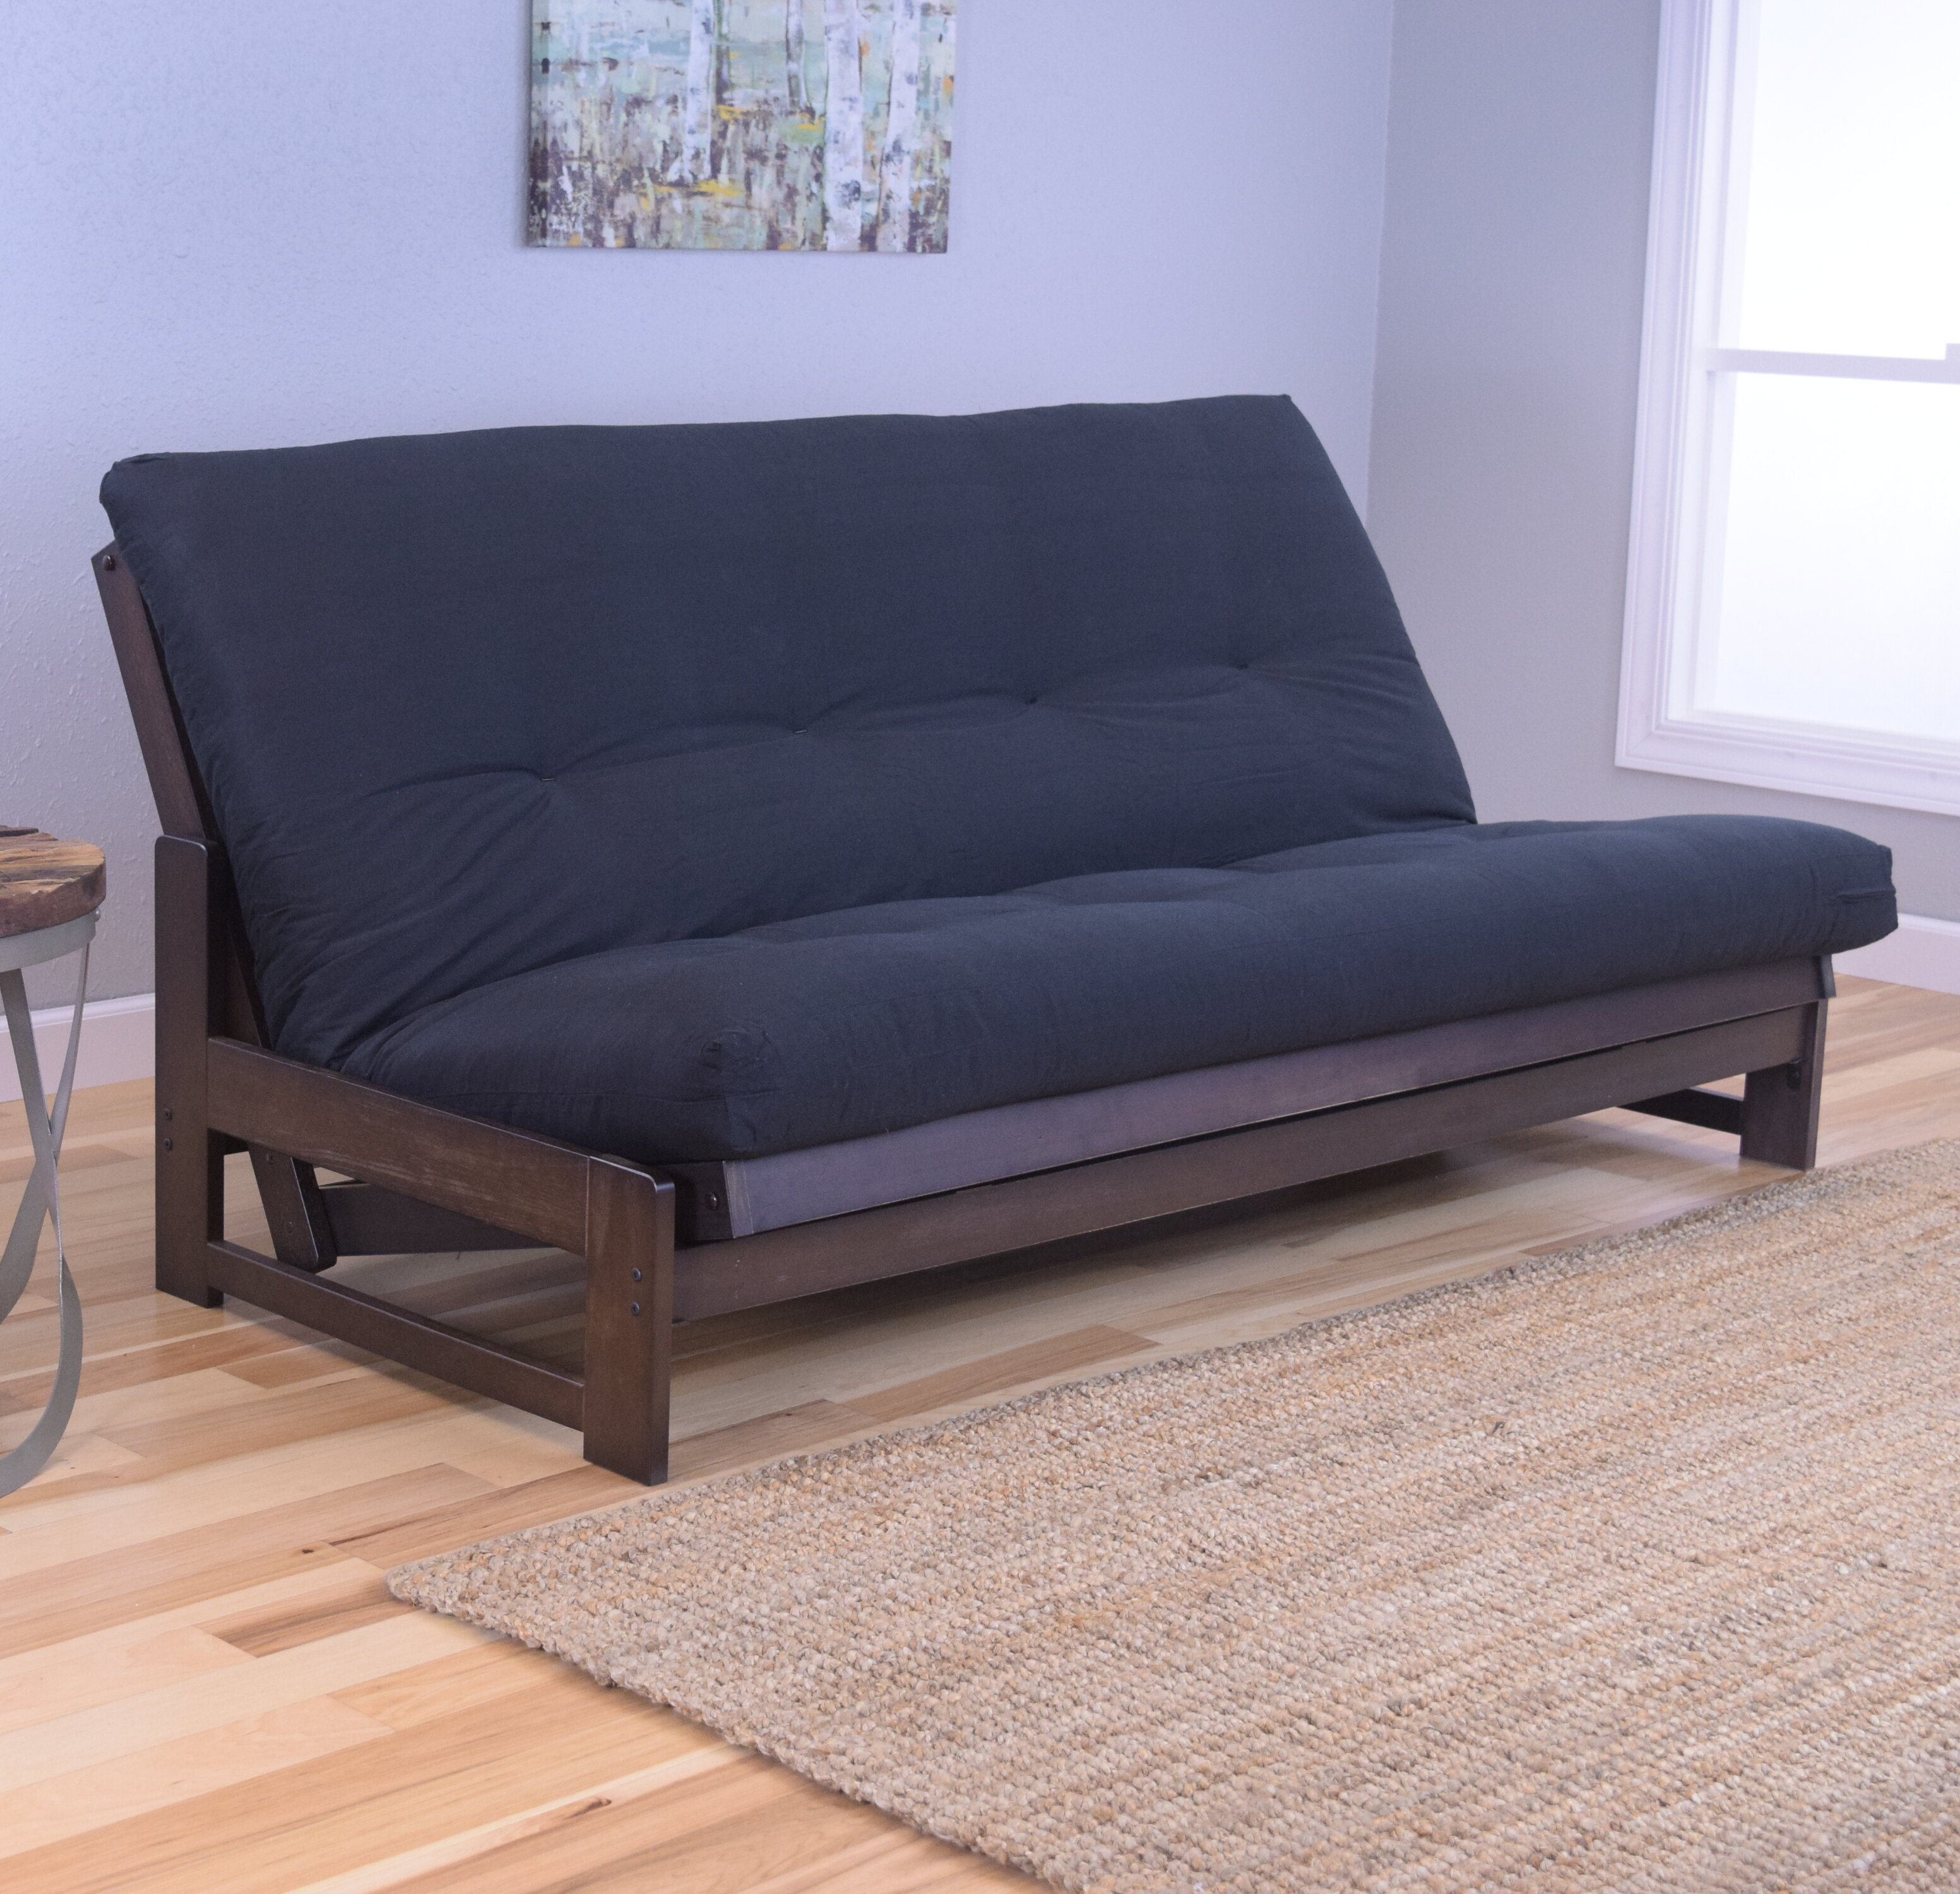 interior walmart covers exciting furniture for ideas futons online futon decorating room living slip